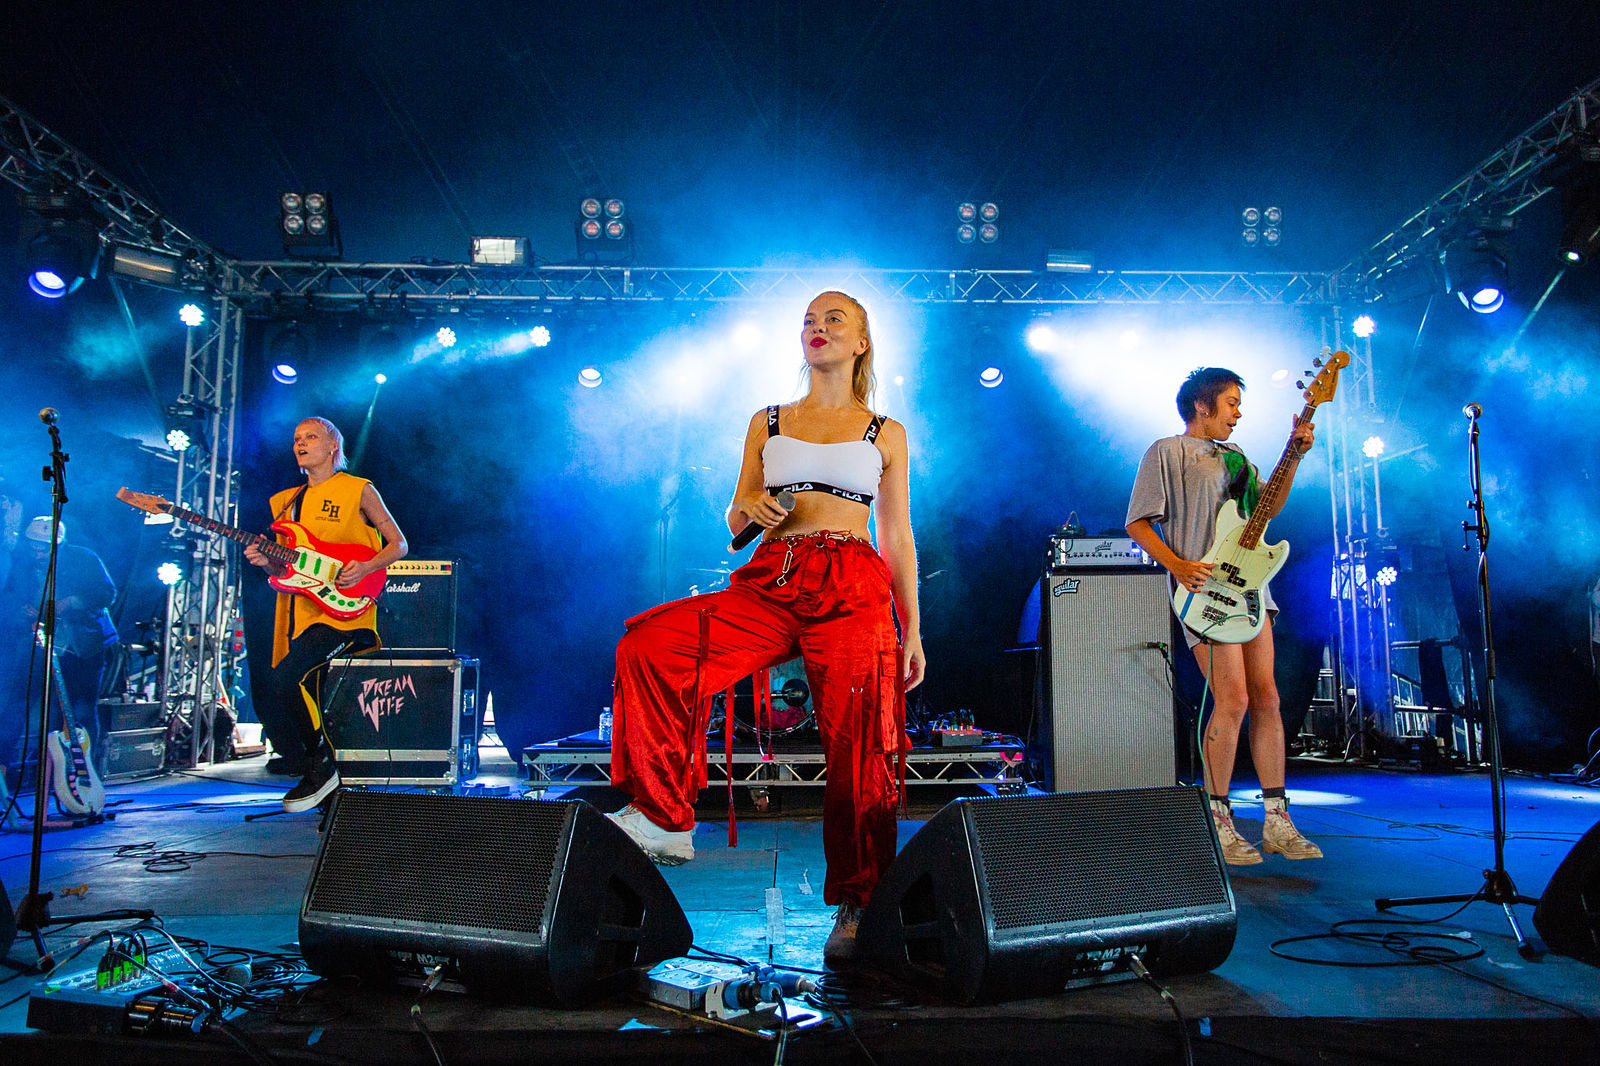 DREAMWIFE PERFORMING ON FESTIVAL REPUBLIC STAGE AT LEEDS FESTIVAL 2018 - 25.08.2018  PICTURE BY: ANDREW BENGE